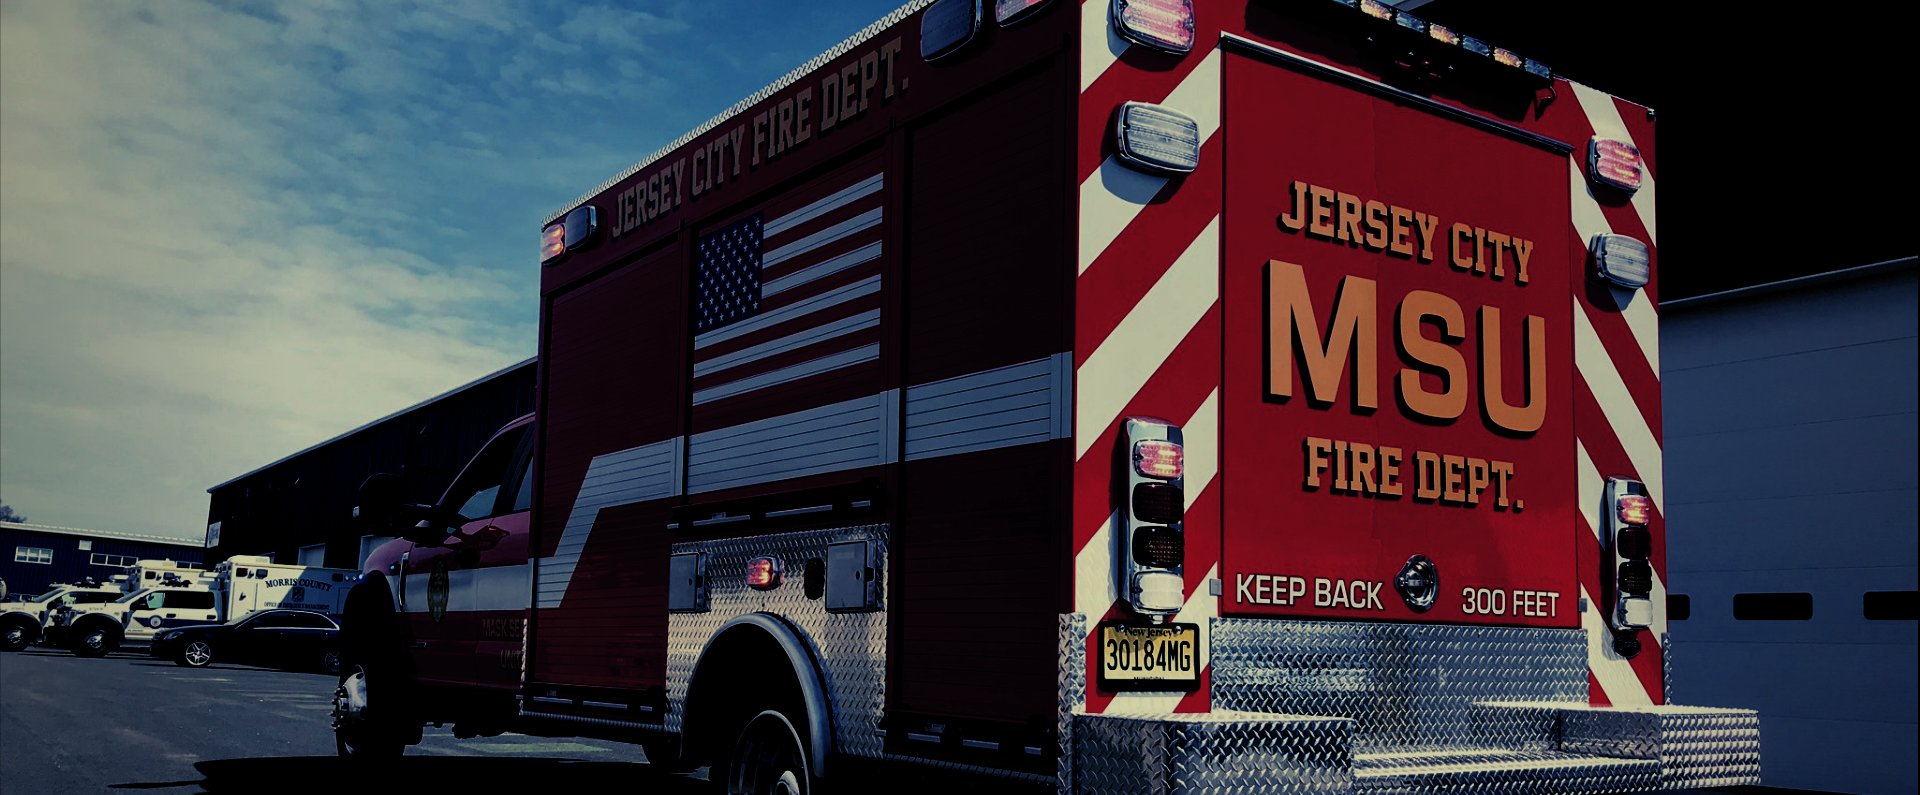 Jersey City MSU Fire Dept Fire Rescue